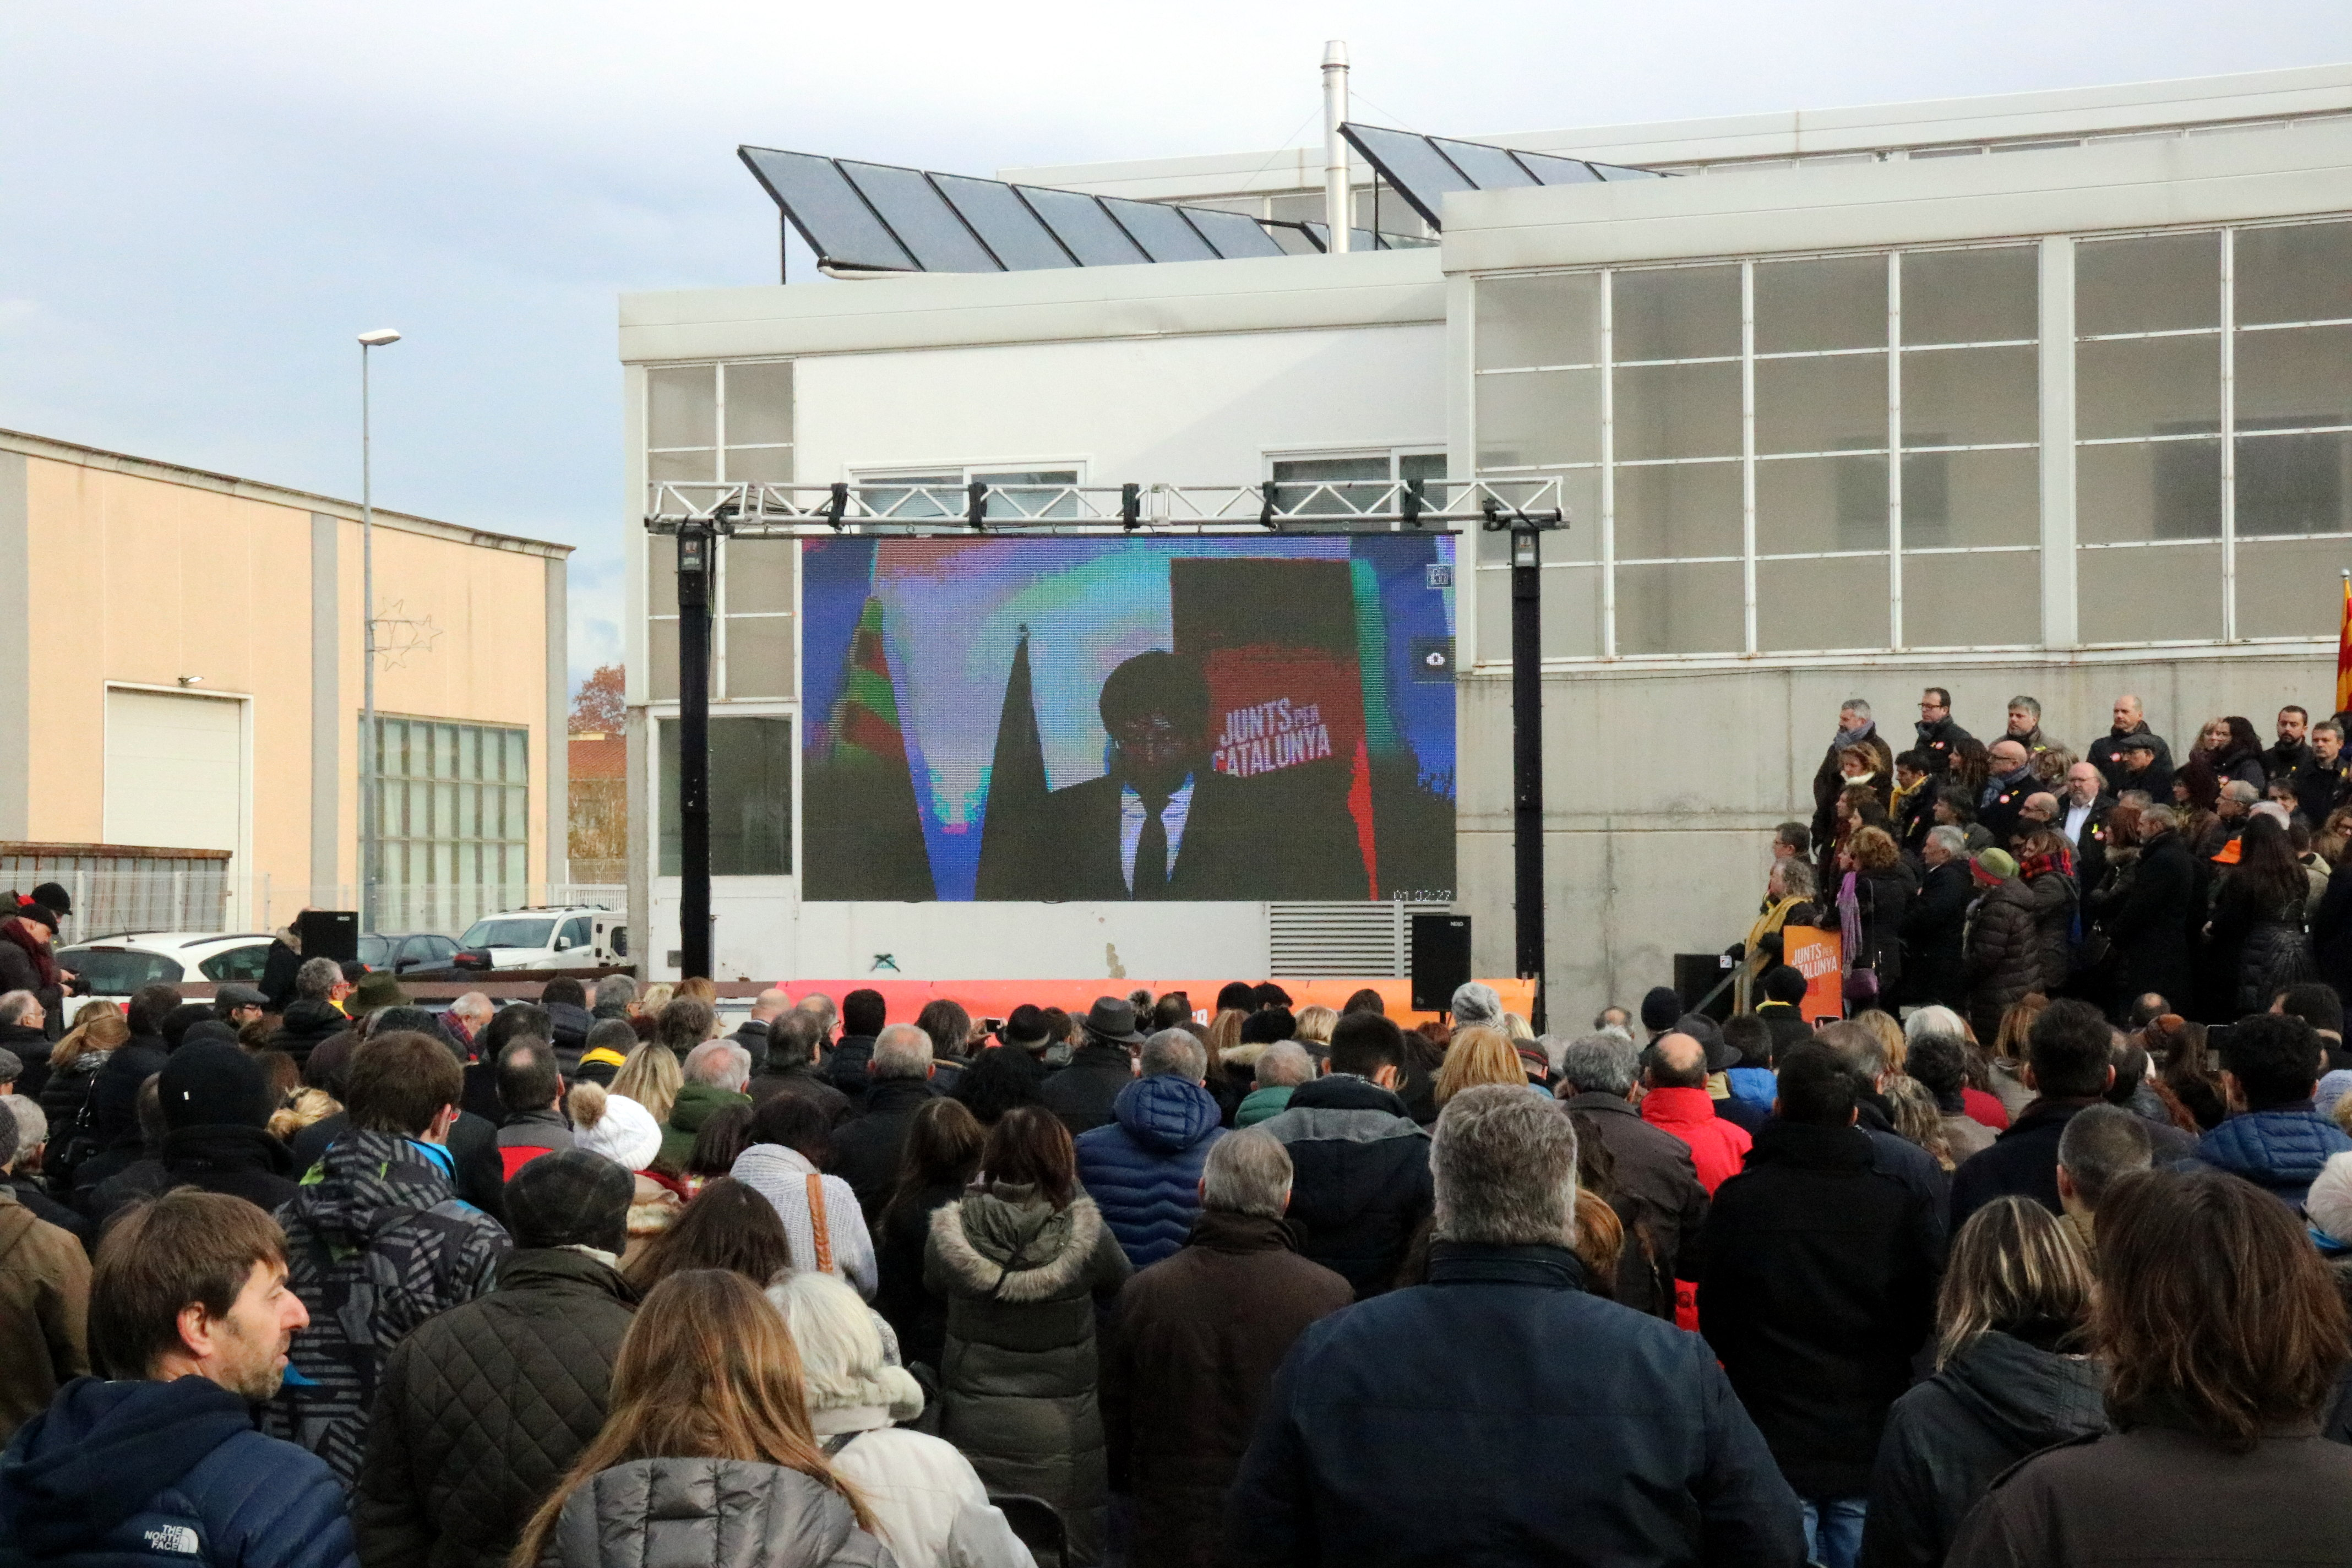 Carles Puigdemont addresses a group of people from a screen in a town in the north of Catalonia (by Gerard Vilà)